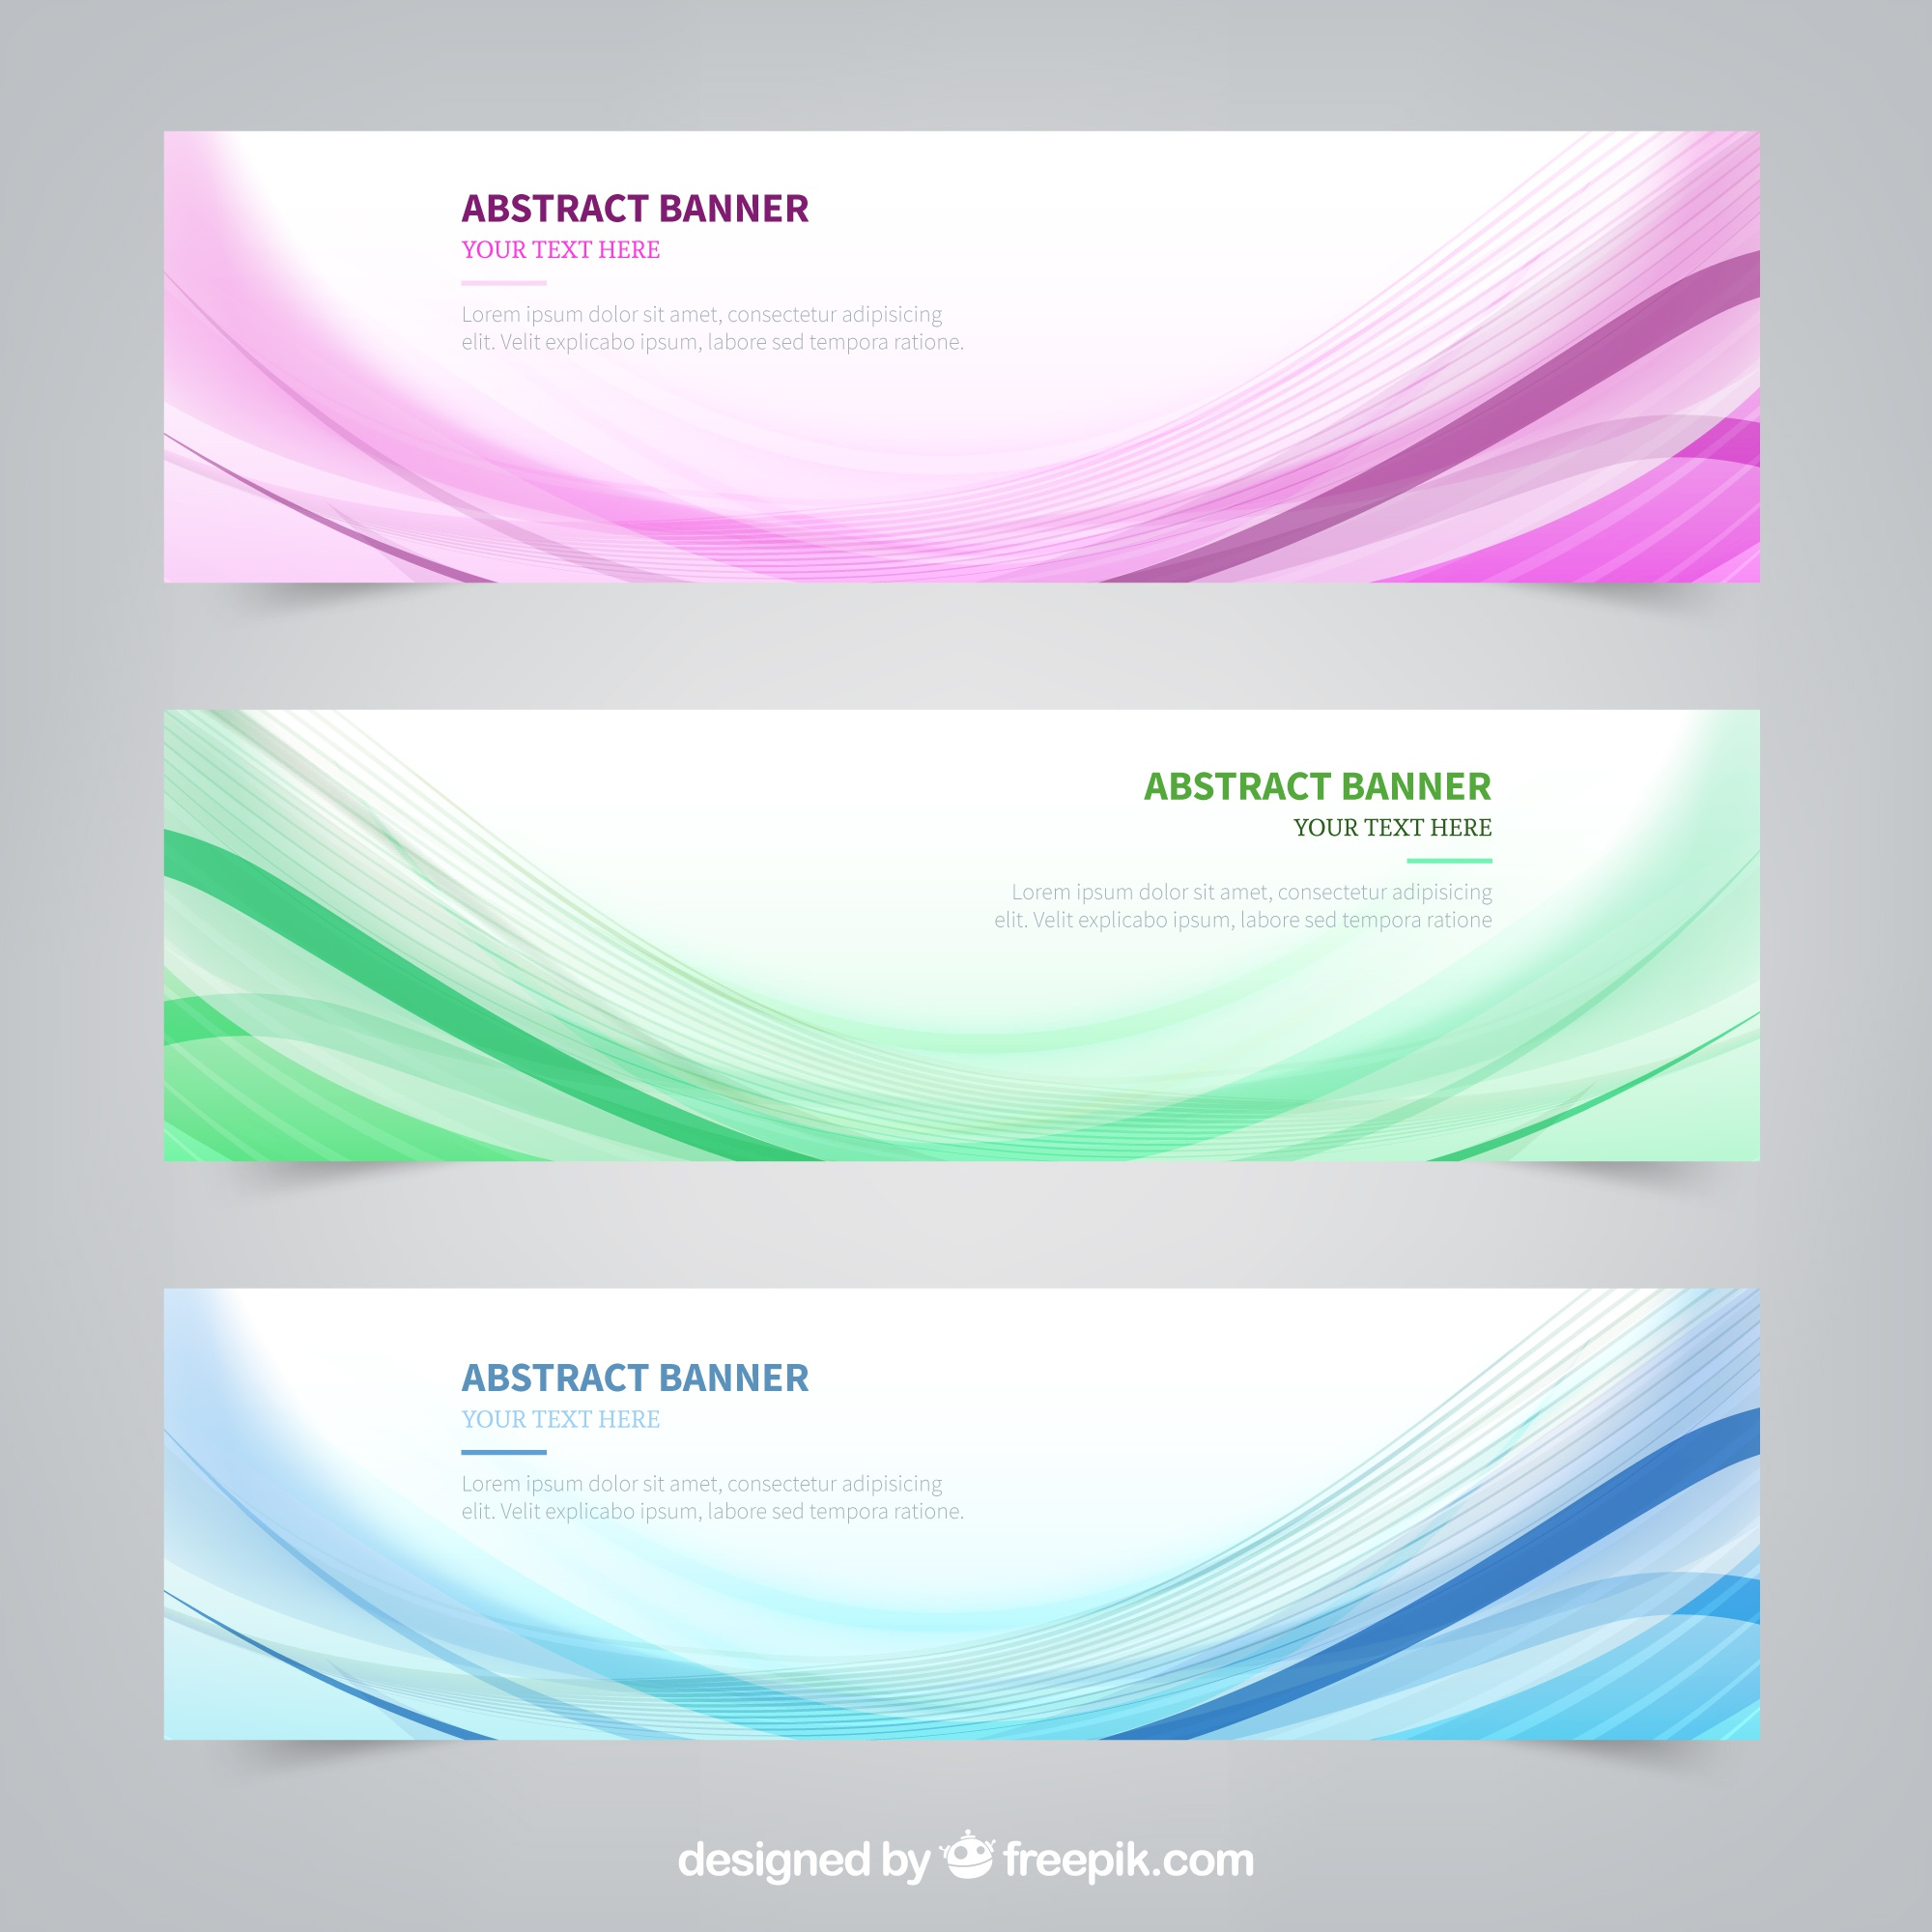 Wavy lines banners